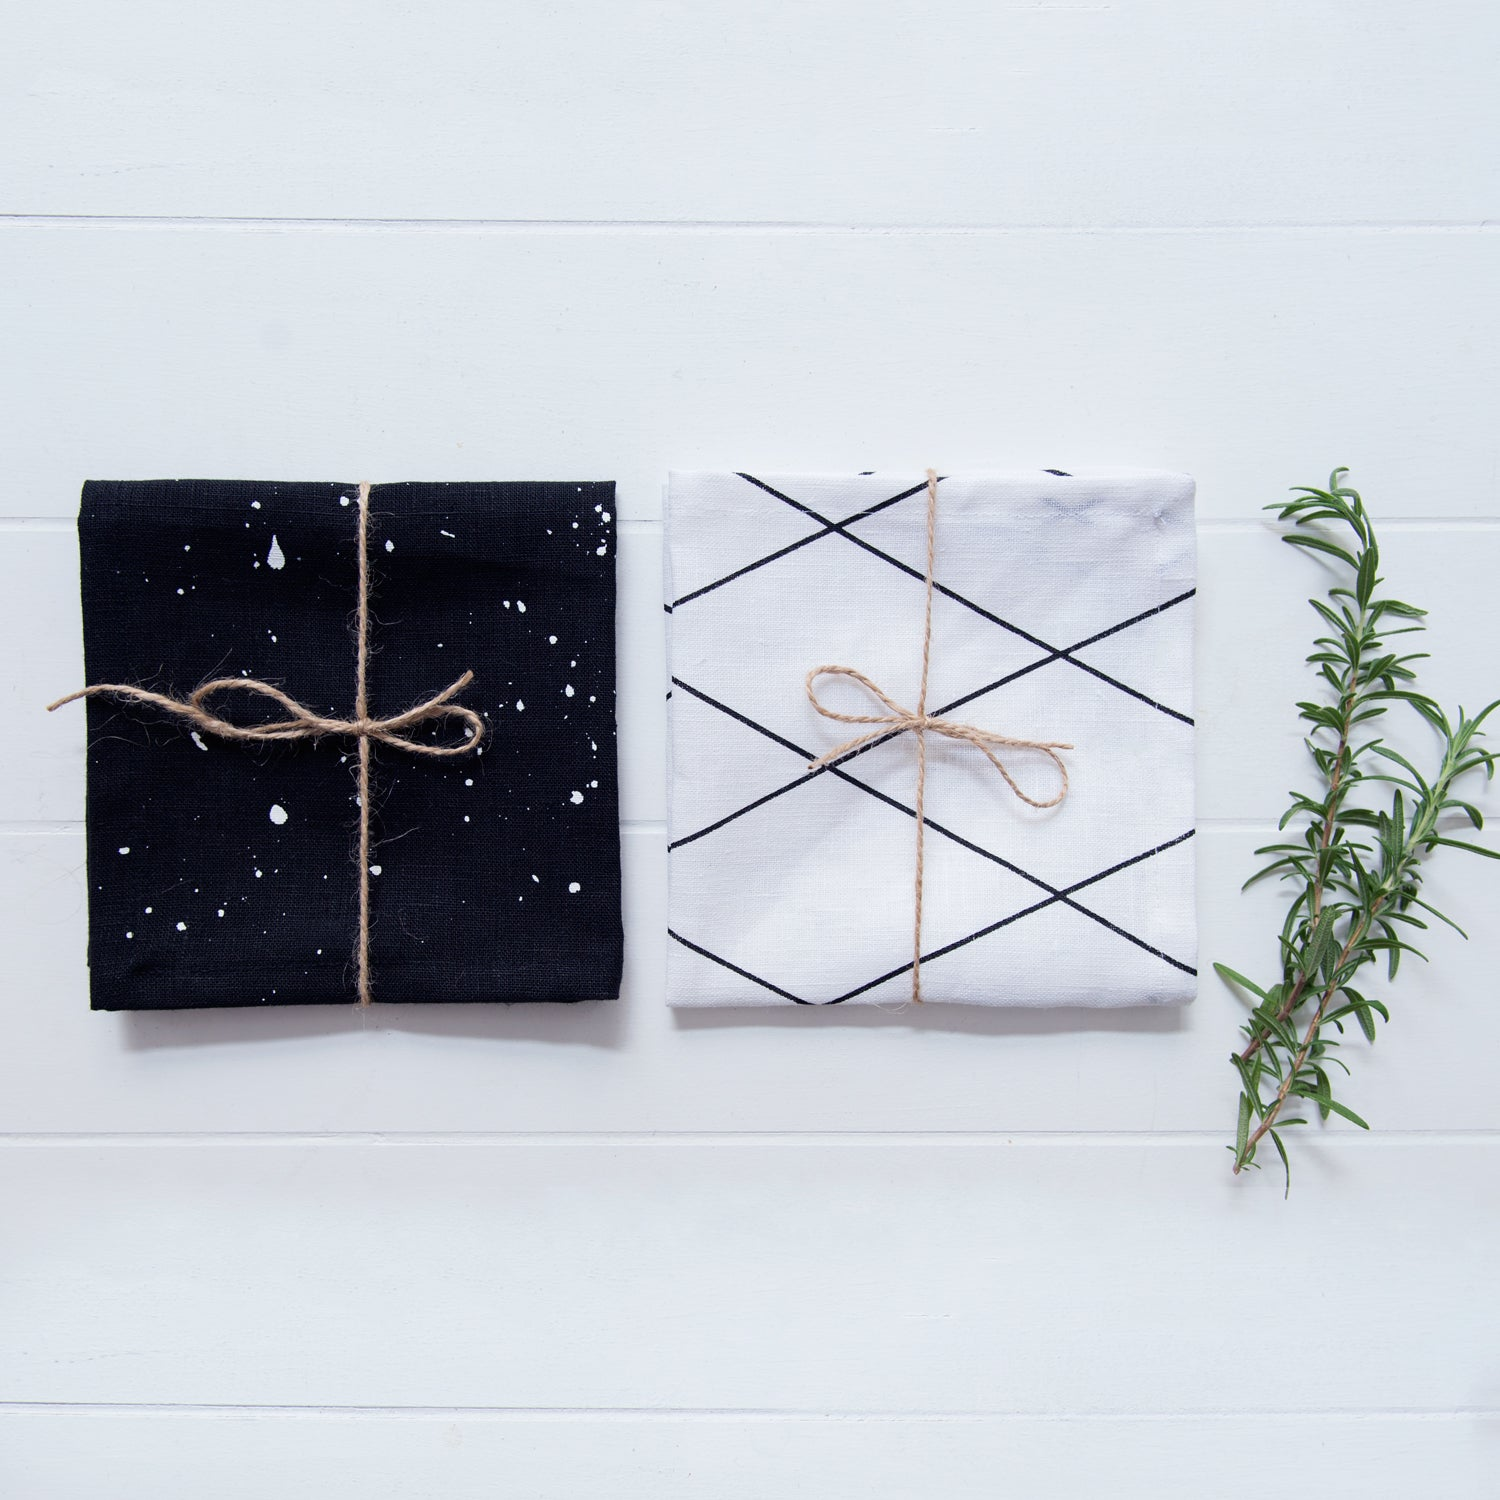 Image of Monochrome Linen Napkin Collection